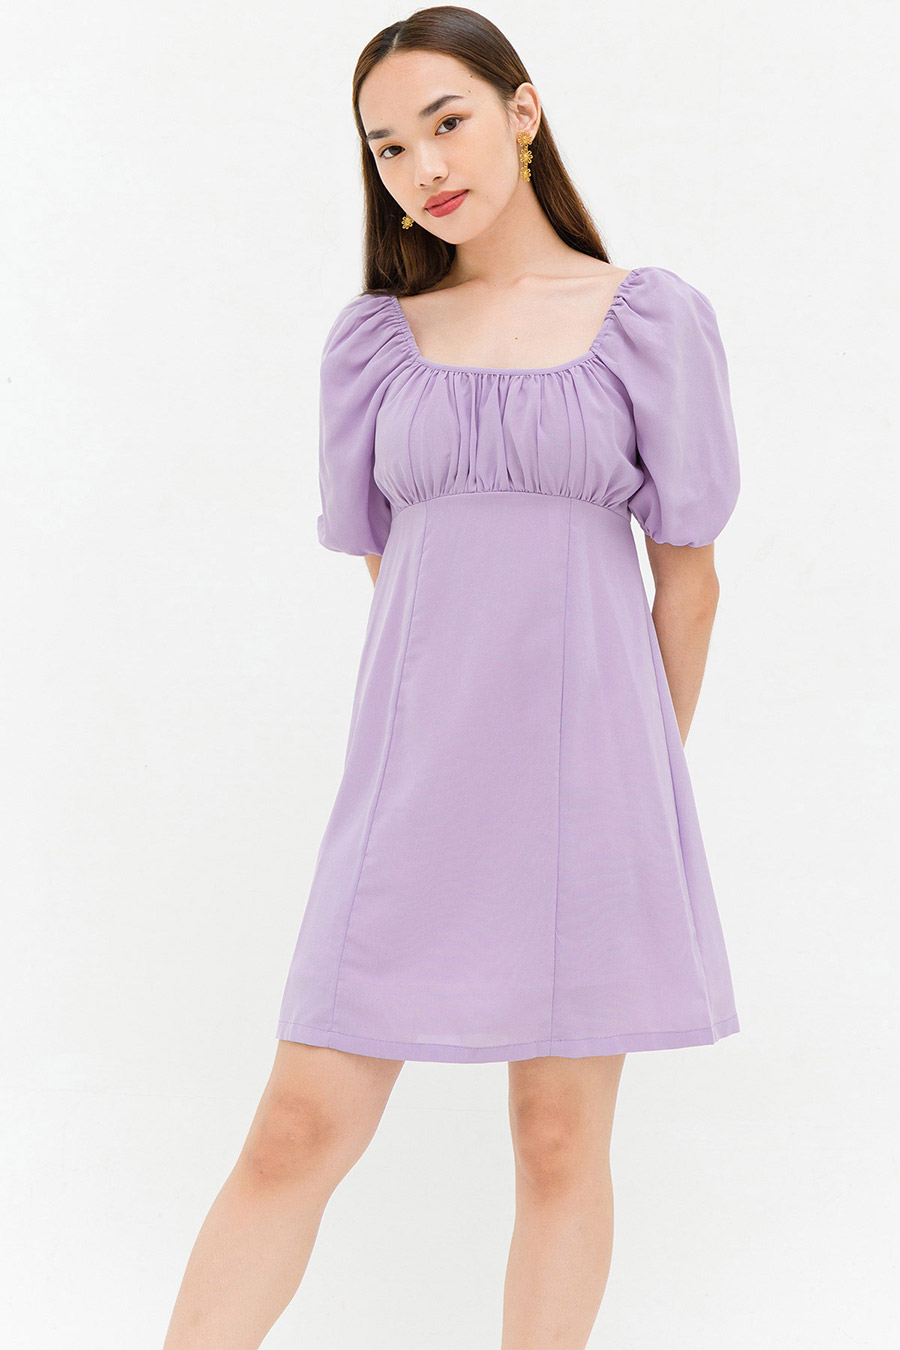 ANNABELLA DRESS - LAVENDER